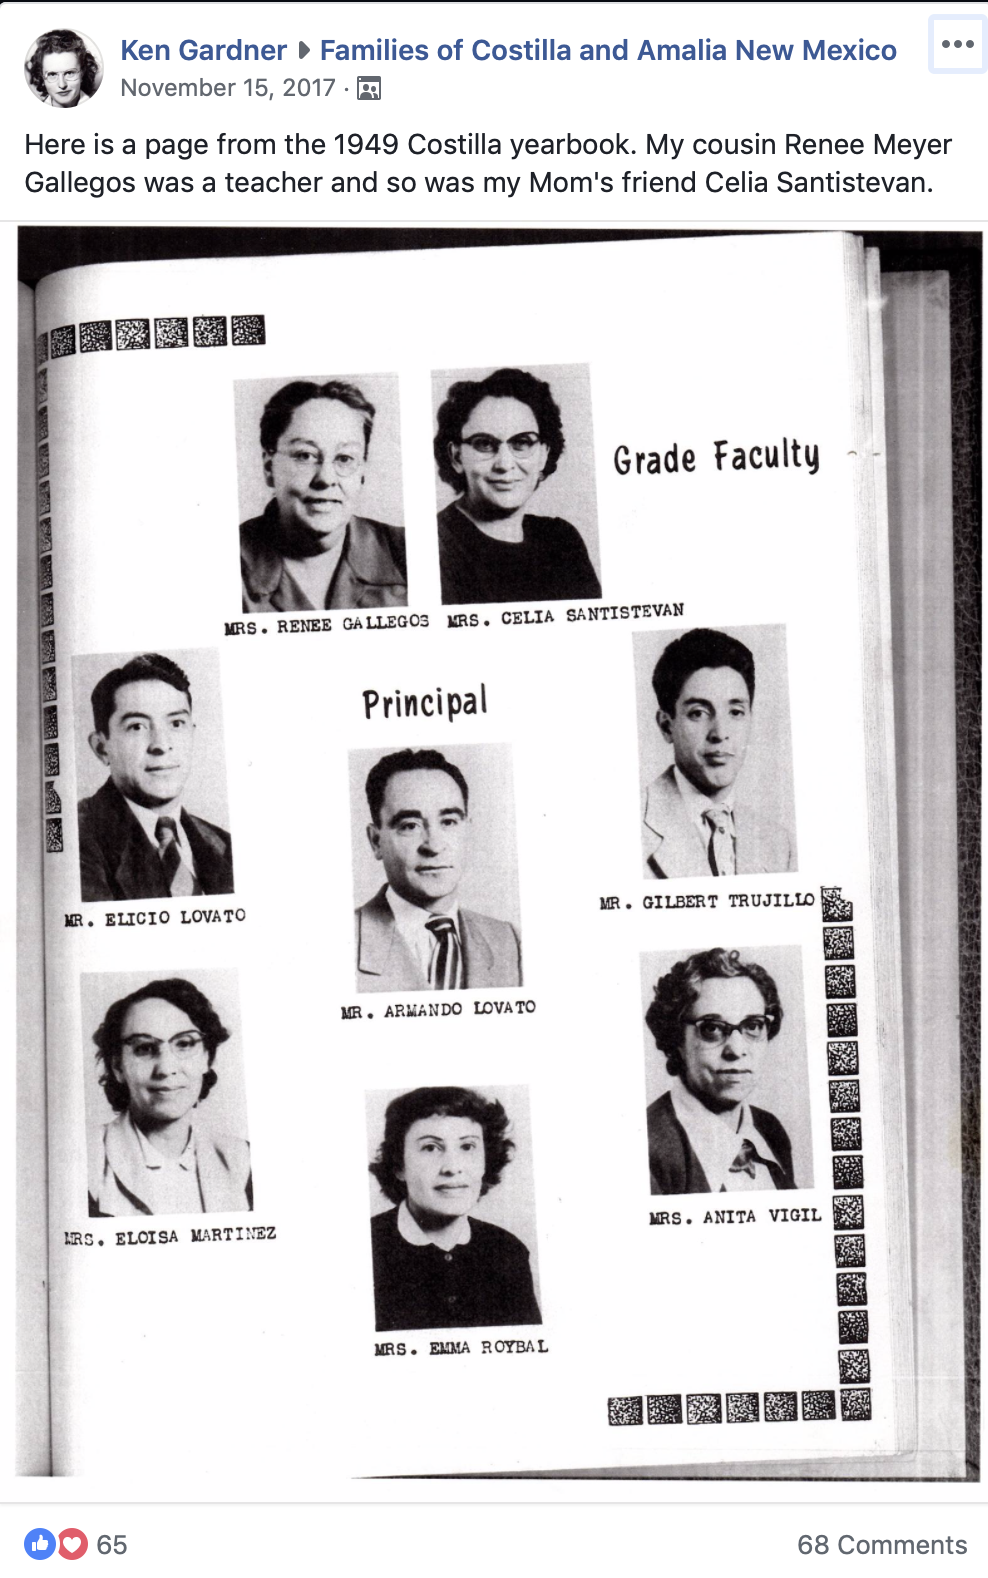 Screenshot of Facebook post with photograph. Photograph shows page faculty page from a yearbook. Portrait photo of school Principal is shown centered, surrounded by portrait photos of teachers. Facebook screenshot text reads: Ken Gardner, Families of Costilla and Amalia New Mexico. Here is a page from the 1949 Costilla yearbook. My cousin Renee Meyer gallegos was a teacher and so was my Mom's friend Celia Santistevan.